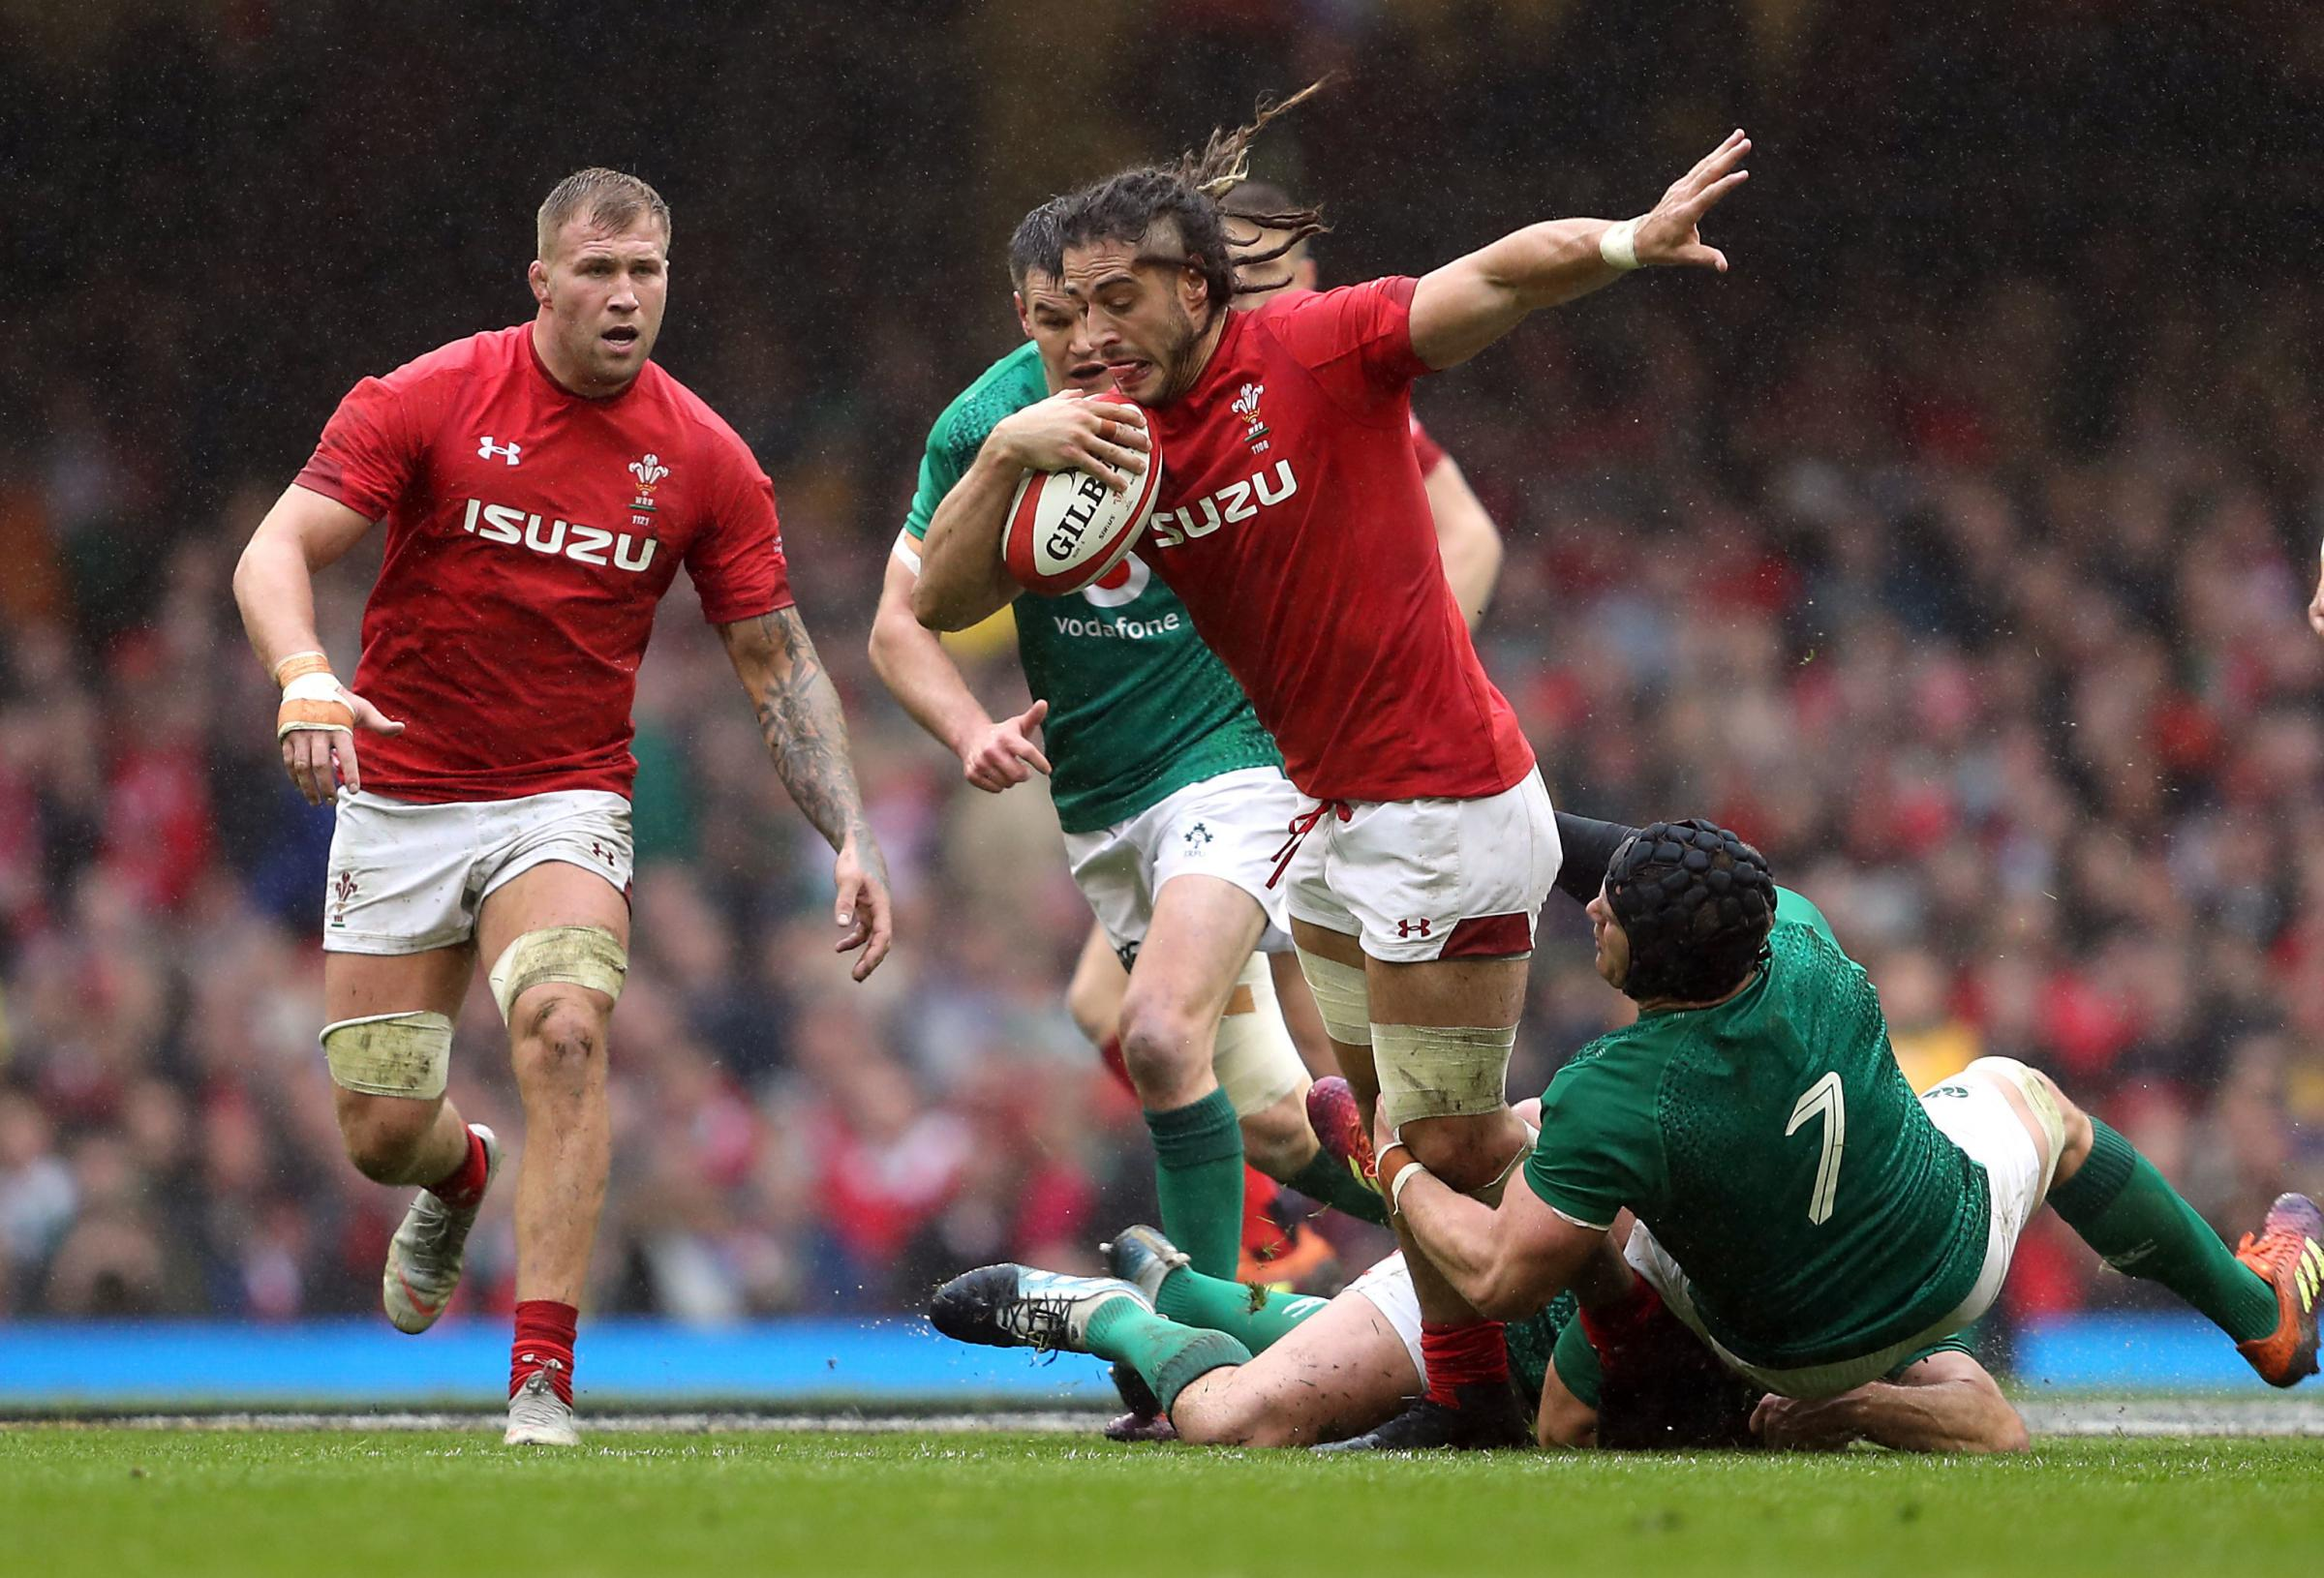 Wales' Josh Navidi (centre) is tackeld by Ireland's Sean O'Brien (right) during the Guinness Six Nations match at the Principality Stadium, Cardiff. PRESS ASSOCIATION Photo. Picture date: Saturday March 16, 2019. See PA story RUGBYU Wales. Pho